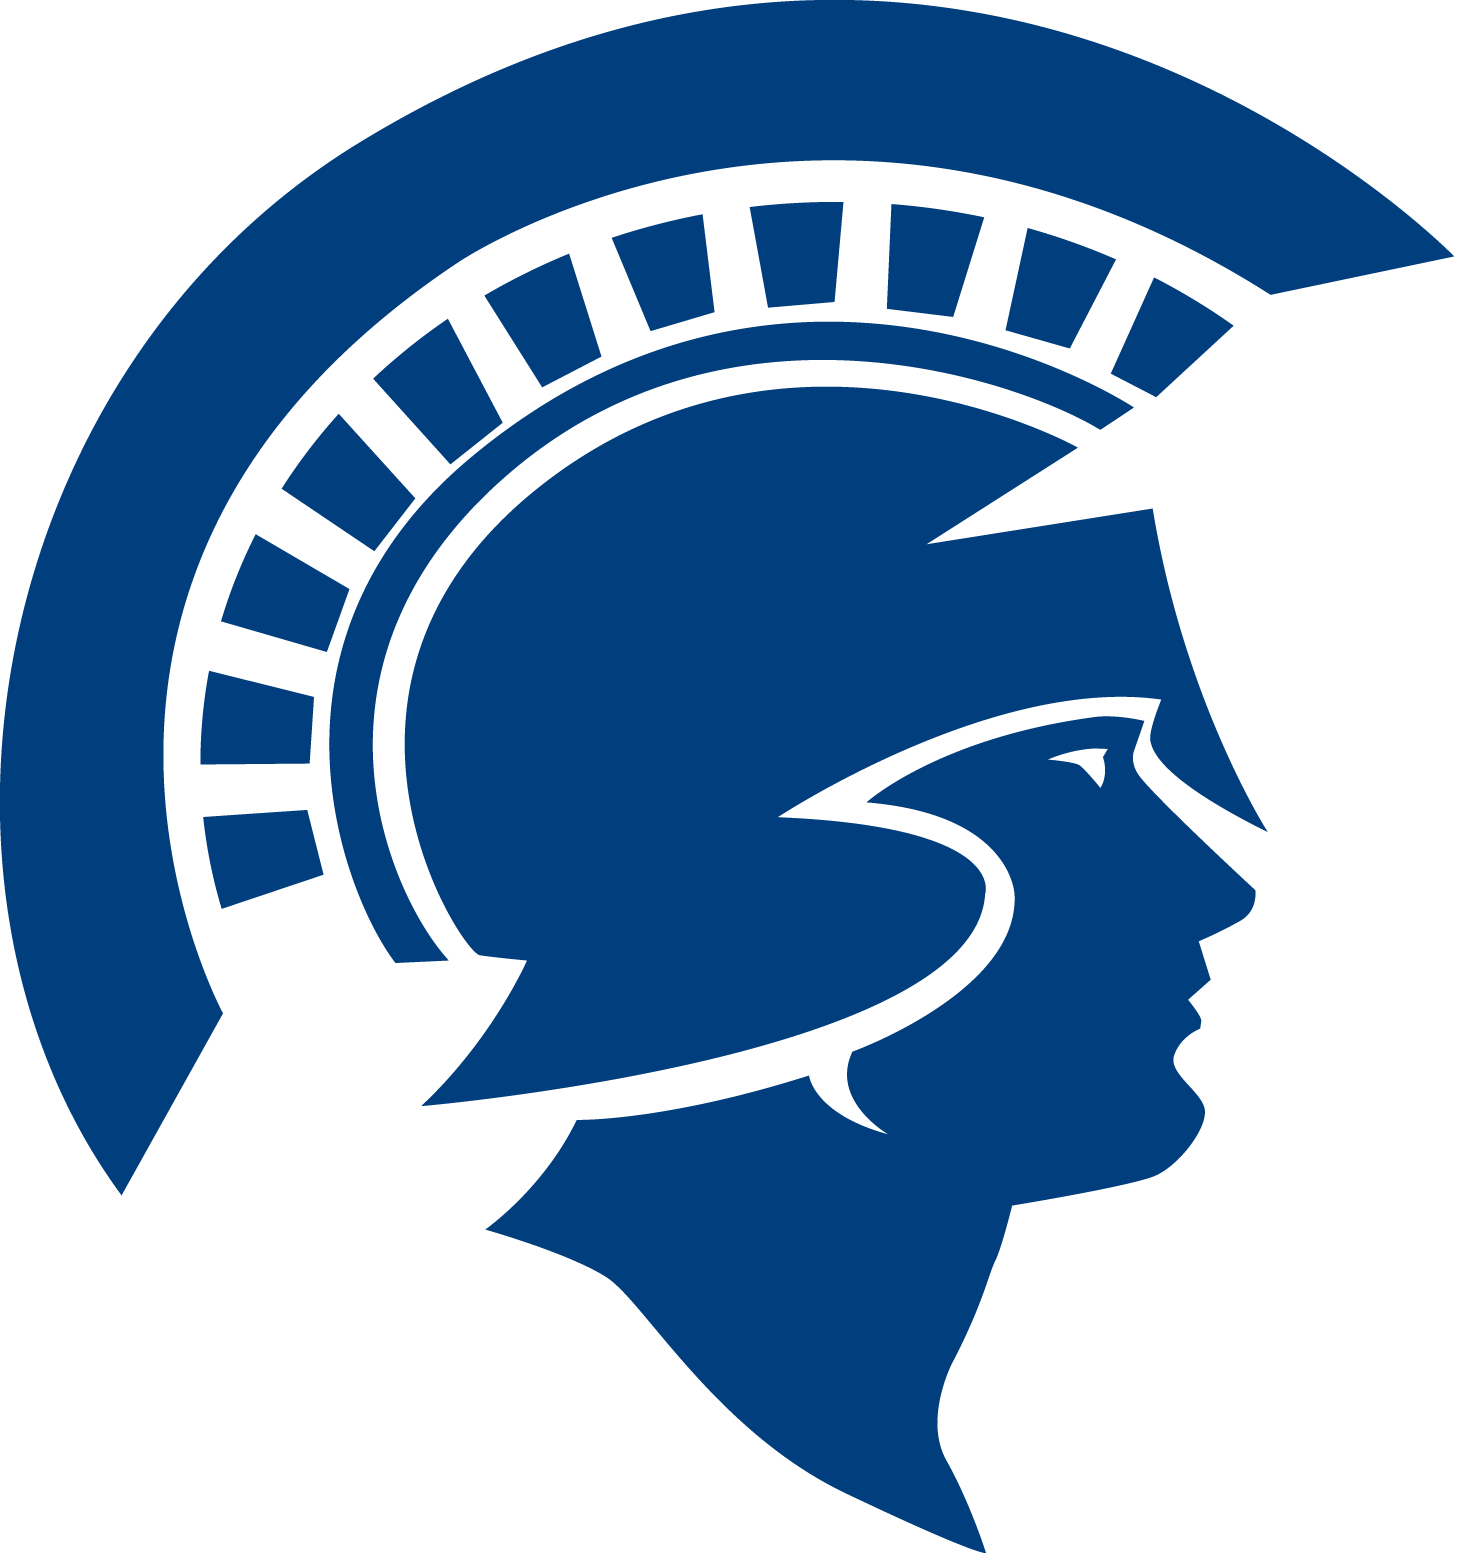 Brookfield East Spartan logo